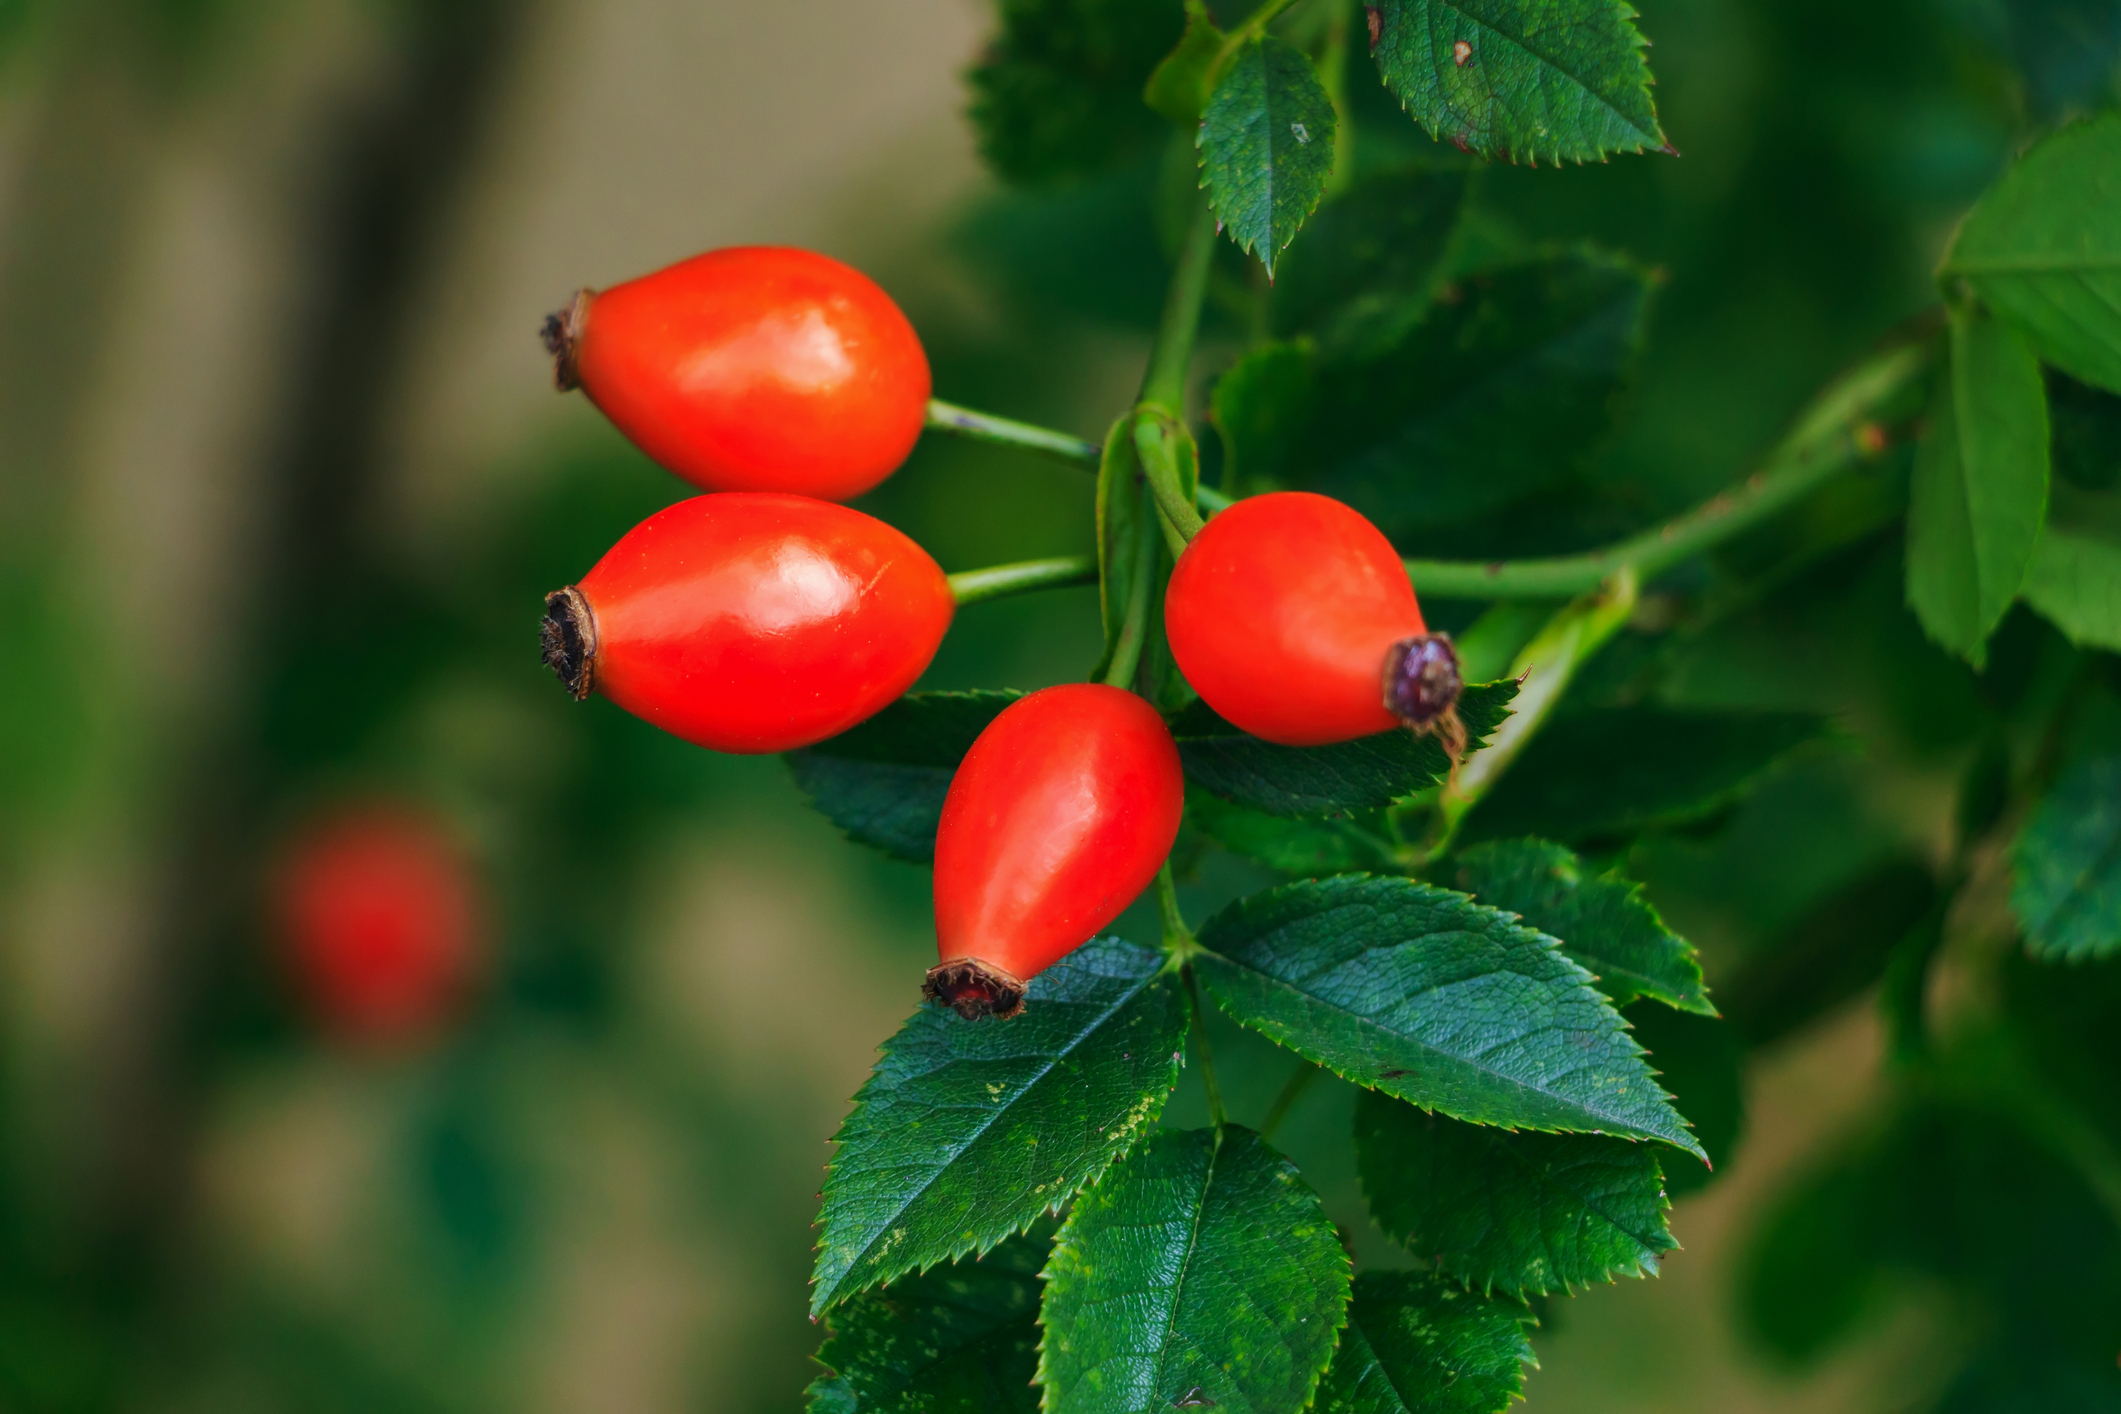 Rose hip oil an excellent source of topical trans-retinoic acid for skin regeneration.